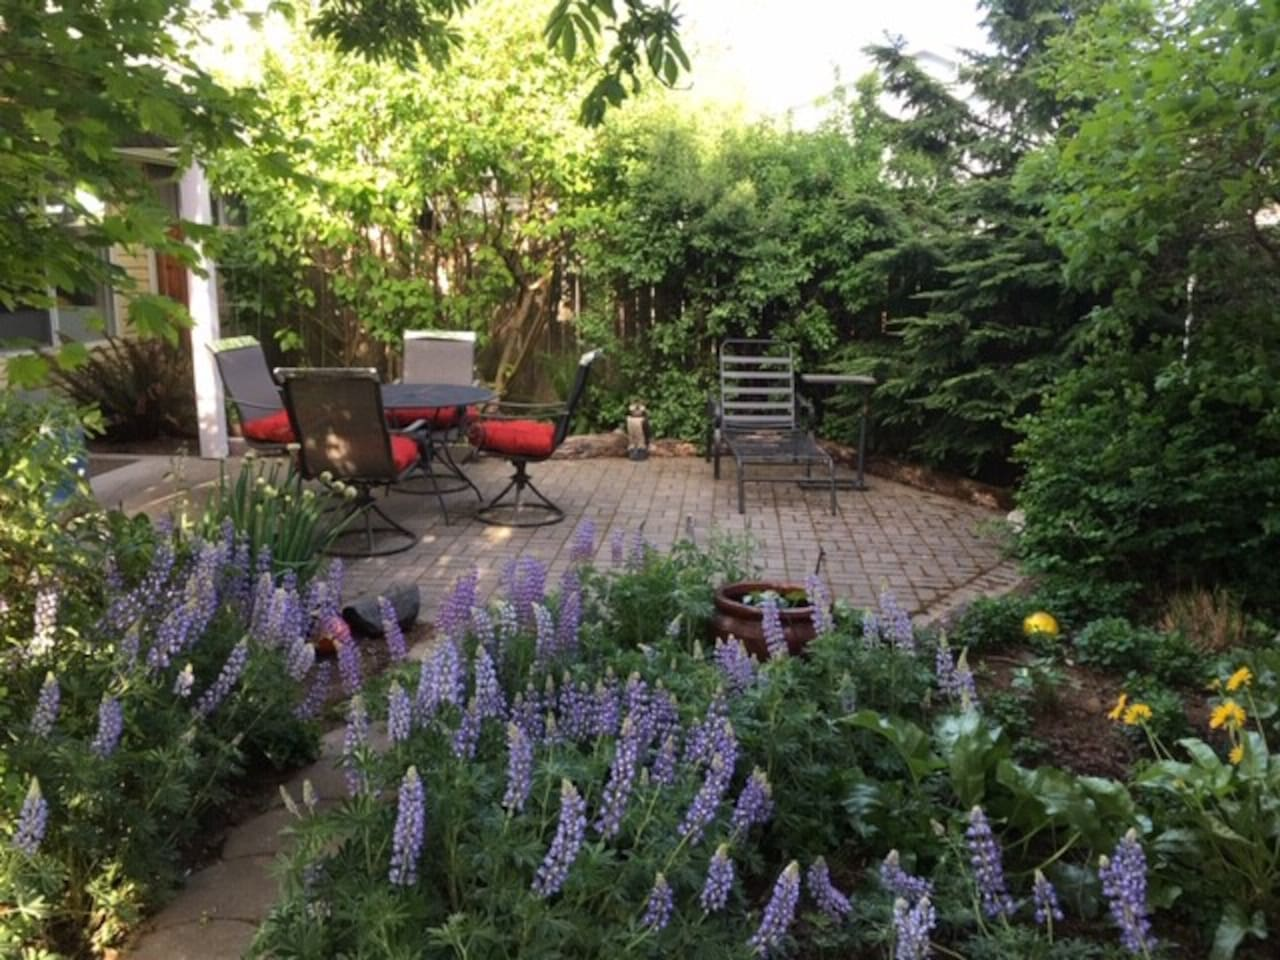 Guest have access to the private backyard. It has 100% native plants and yes, those are Gorge wildflowers blooming in Spring!